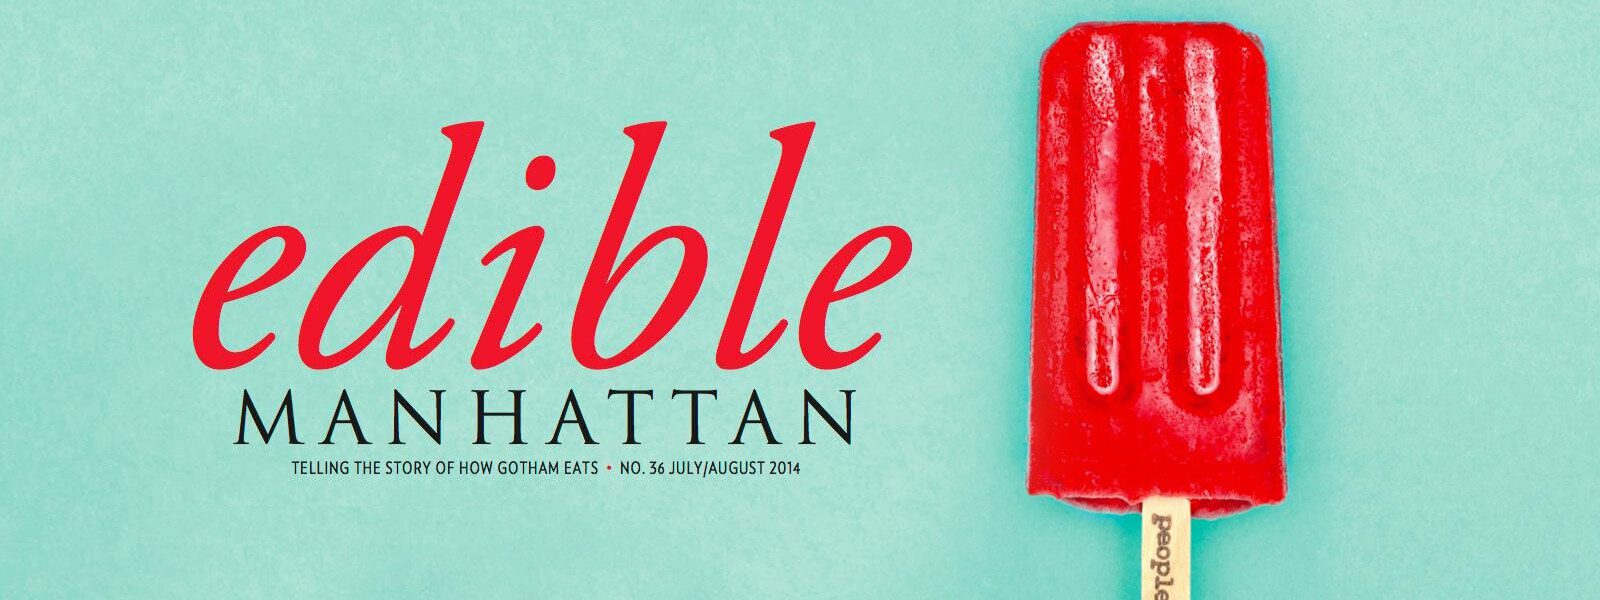 Edible Manhattan cover with red popsicle.